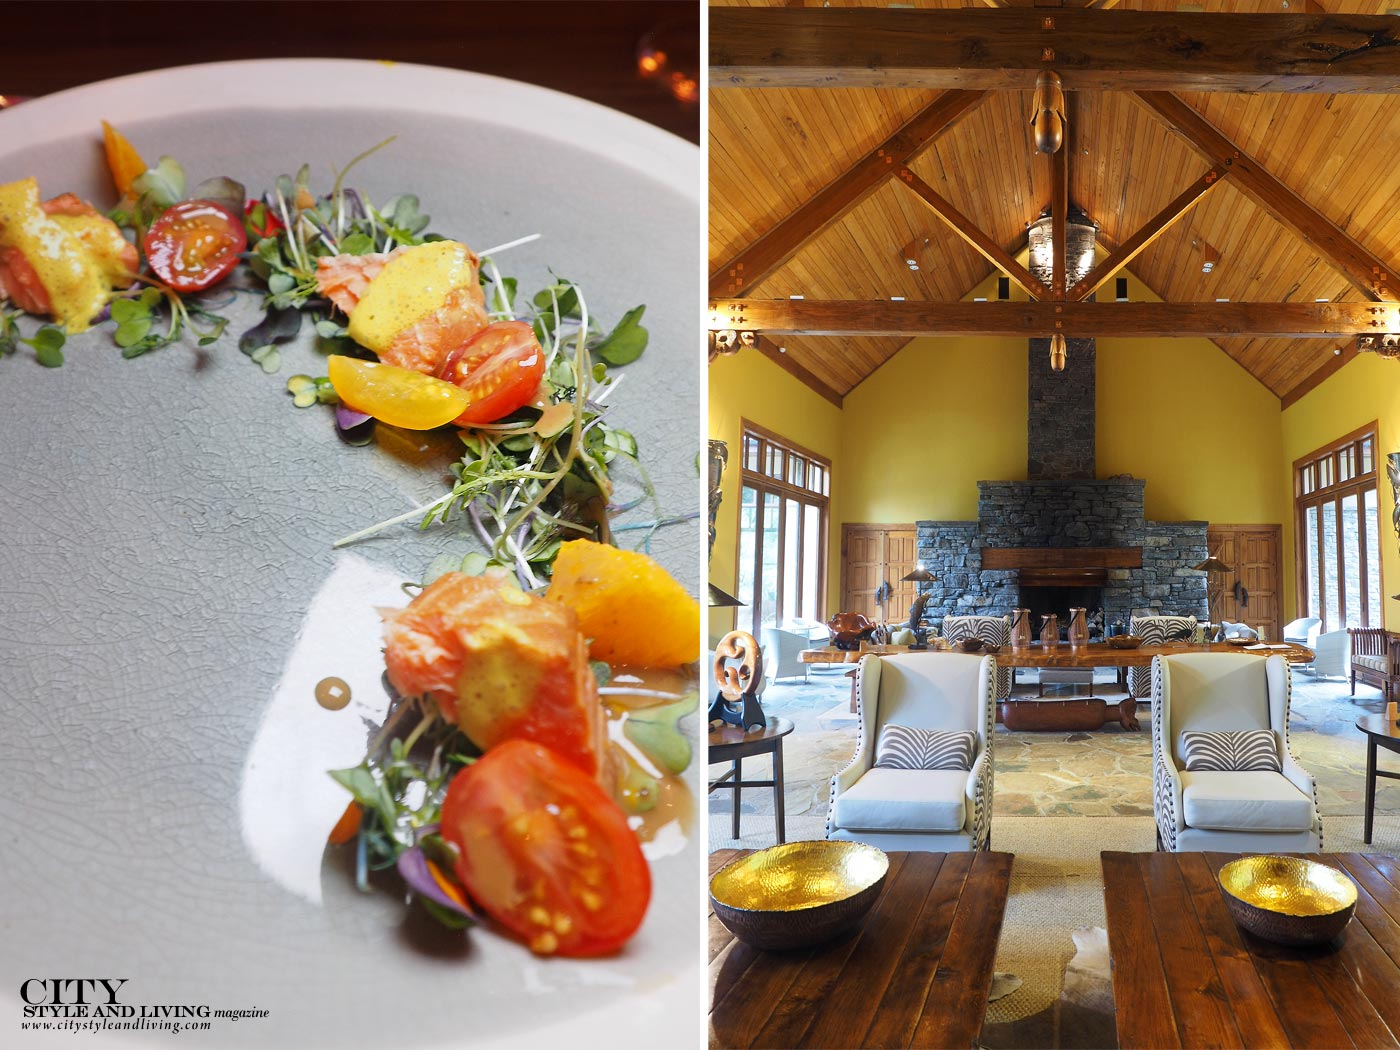 City Style and Living Magazine treetops lodge and estate dinner salad and interior of great hall